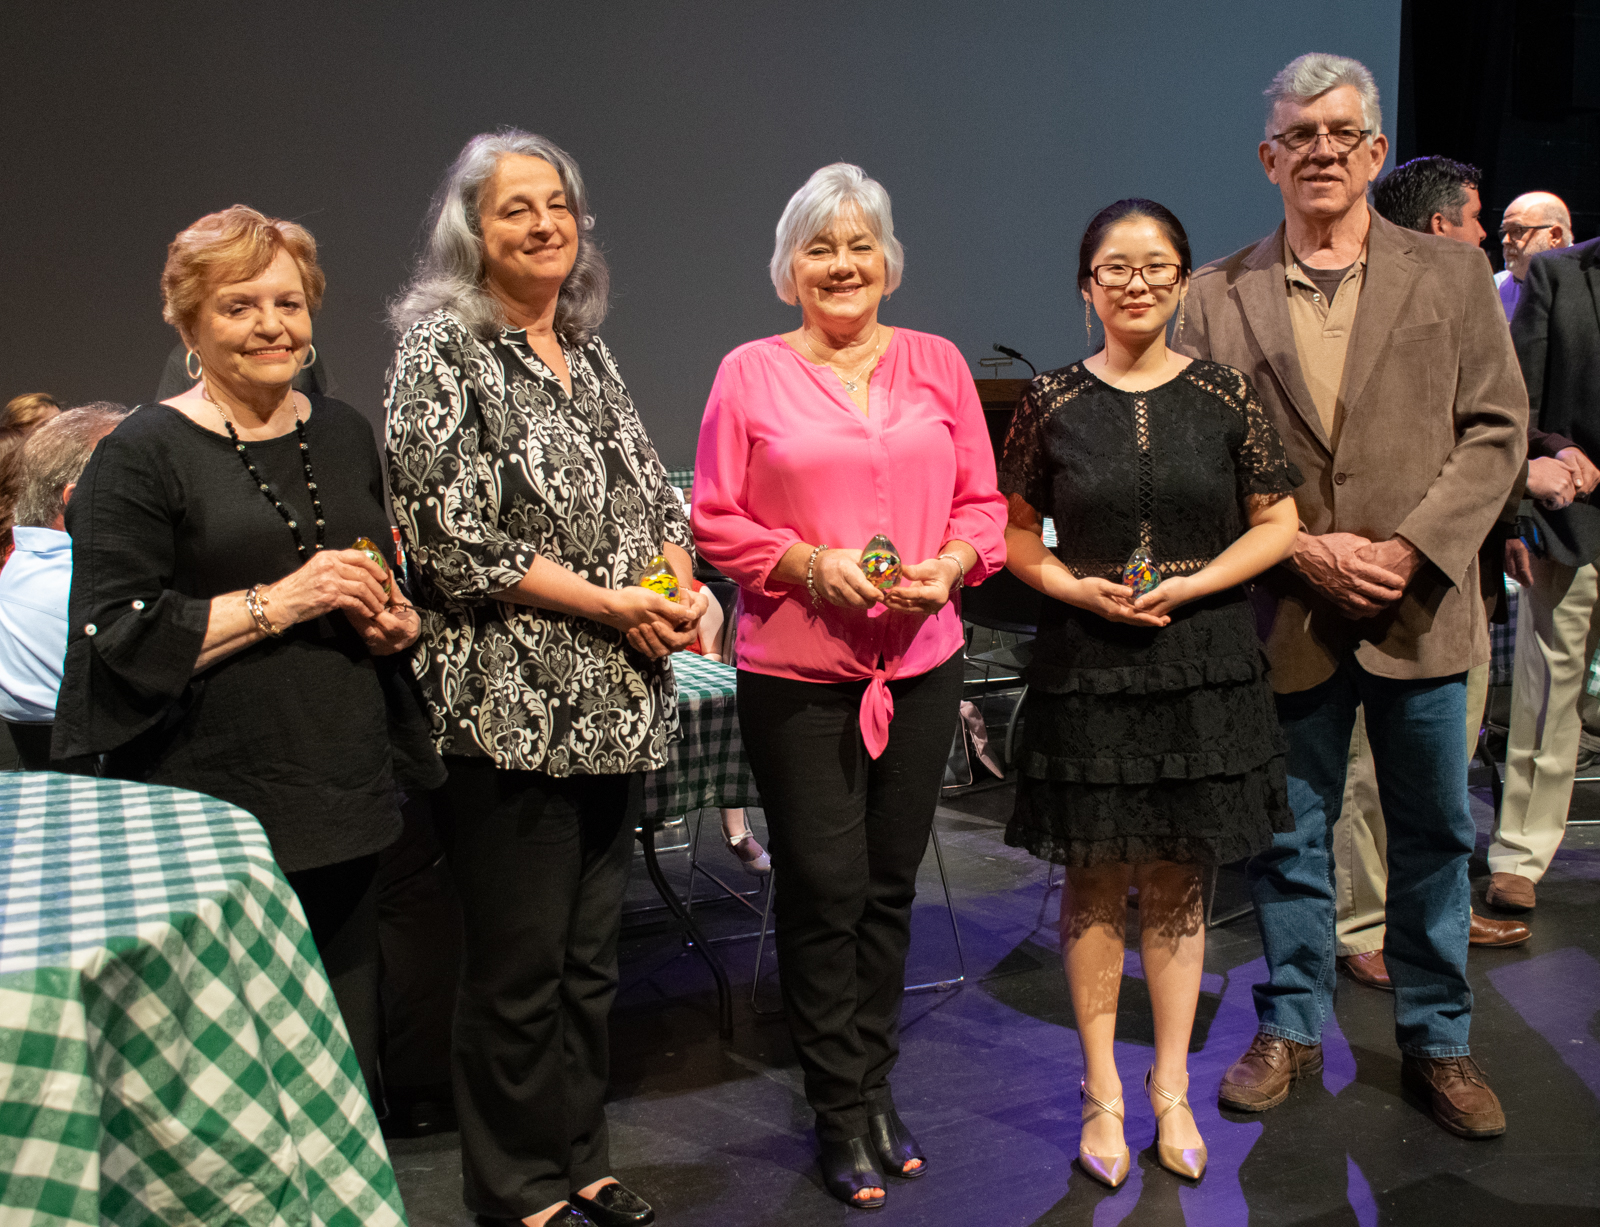 2019 Good Egg Awards recipients were Charlotte England (from left), Donna Oates, Pam Holcomb, Yunru (Rachel) Shinn and Bill Moss. The five were among those honored during the Arts & Science Center's Volunteer Night awards and reception on Thursday, April 11. The awards were crafted by glassmaker  James Hayes .­